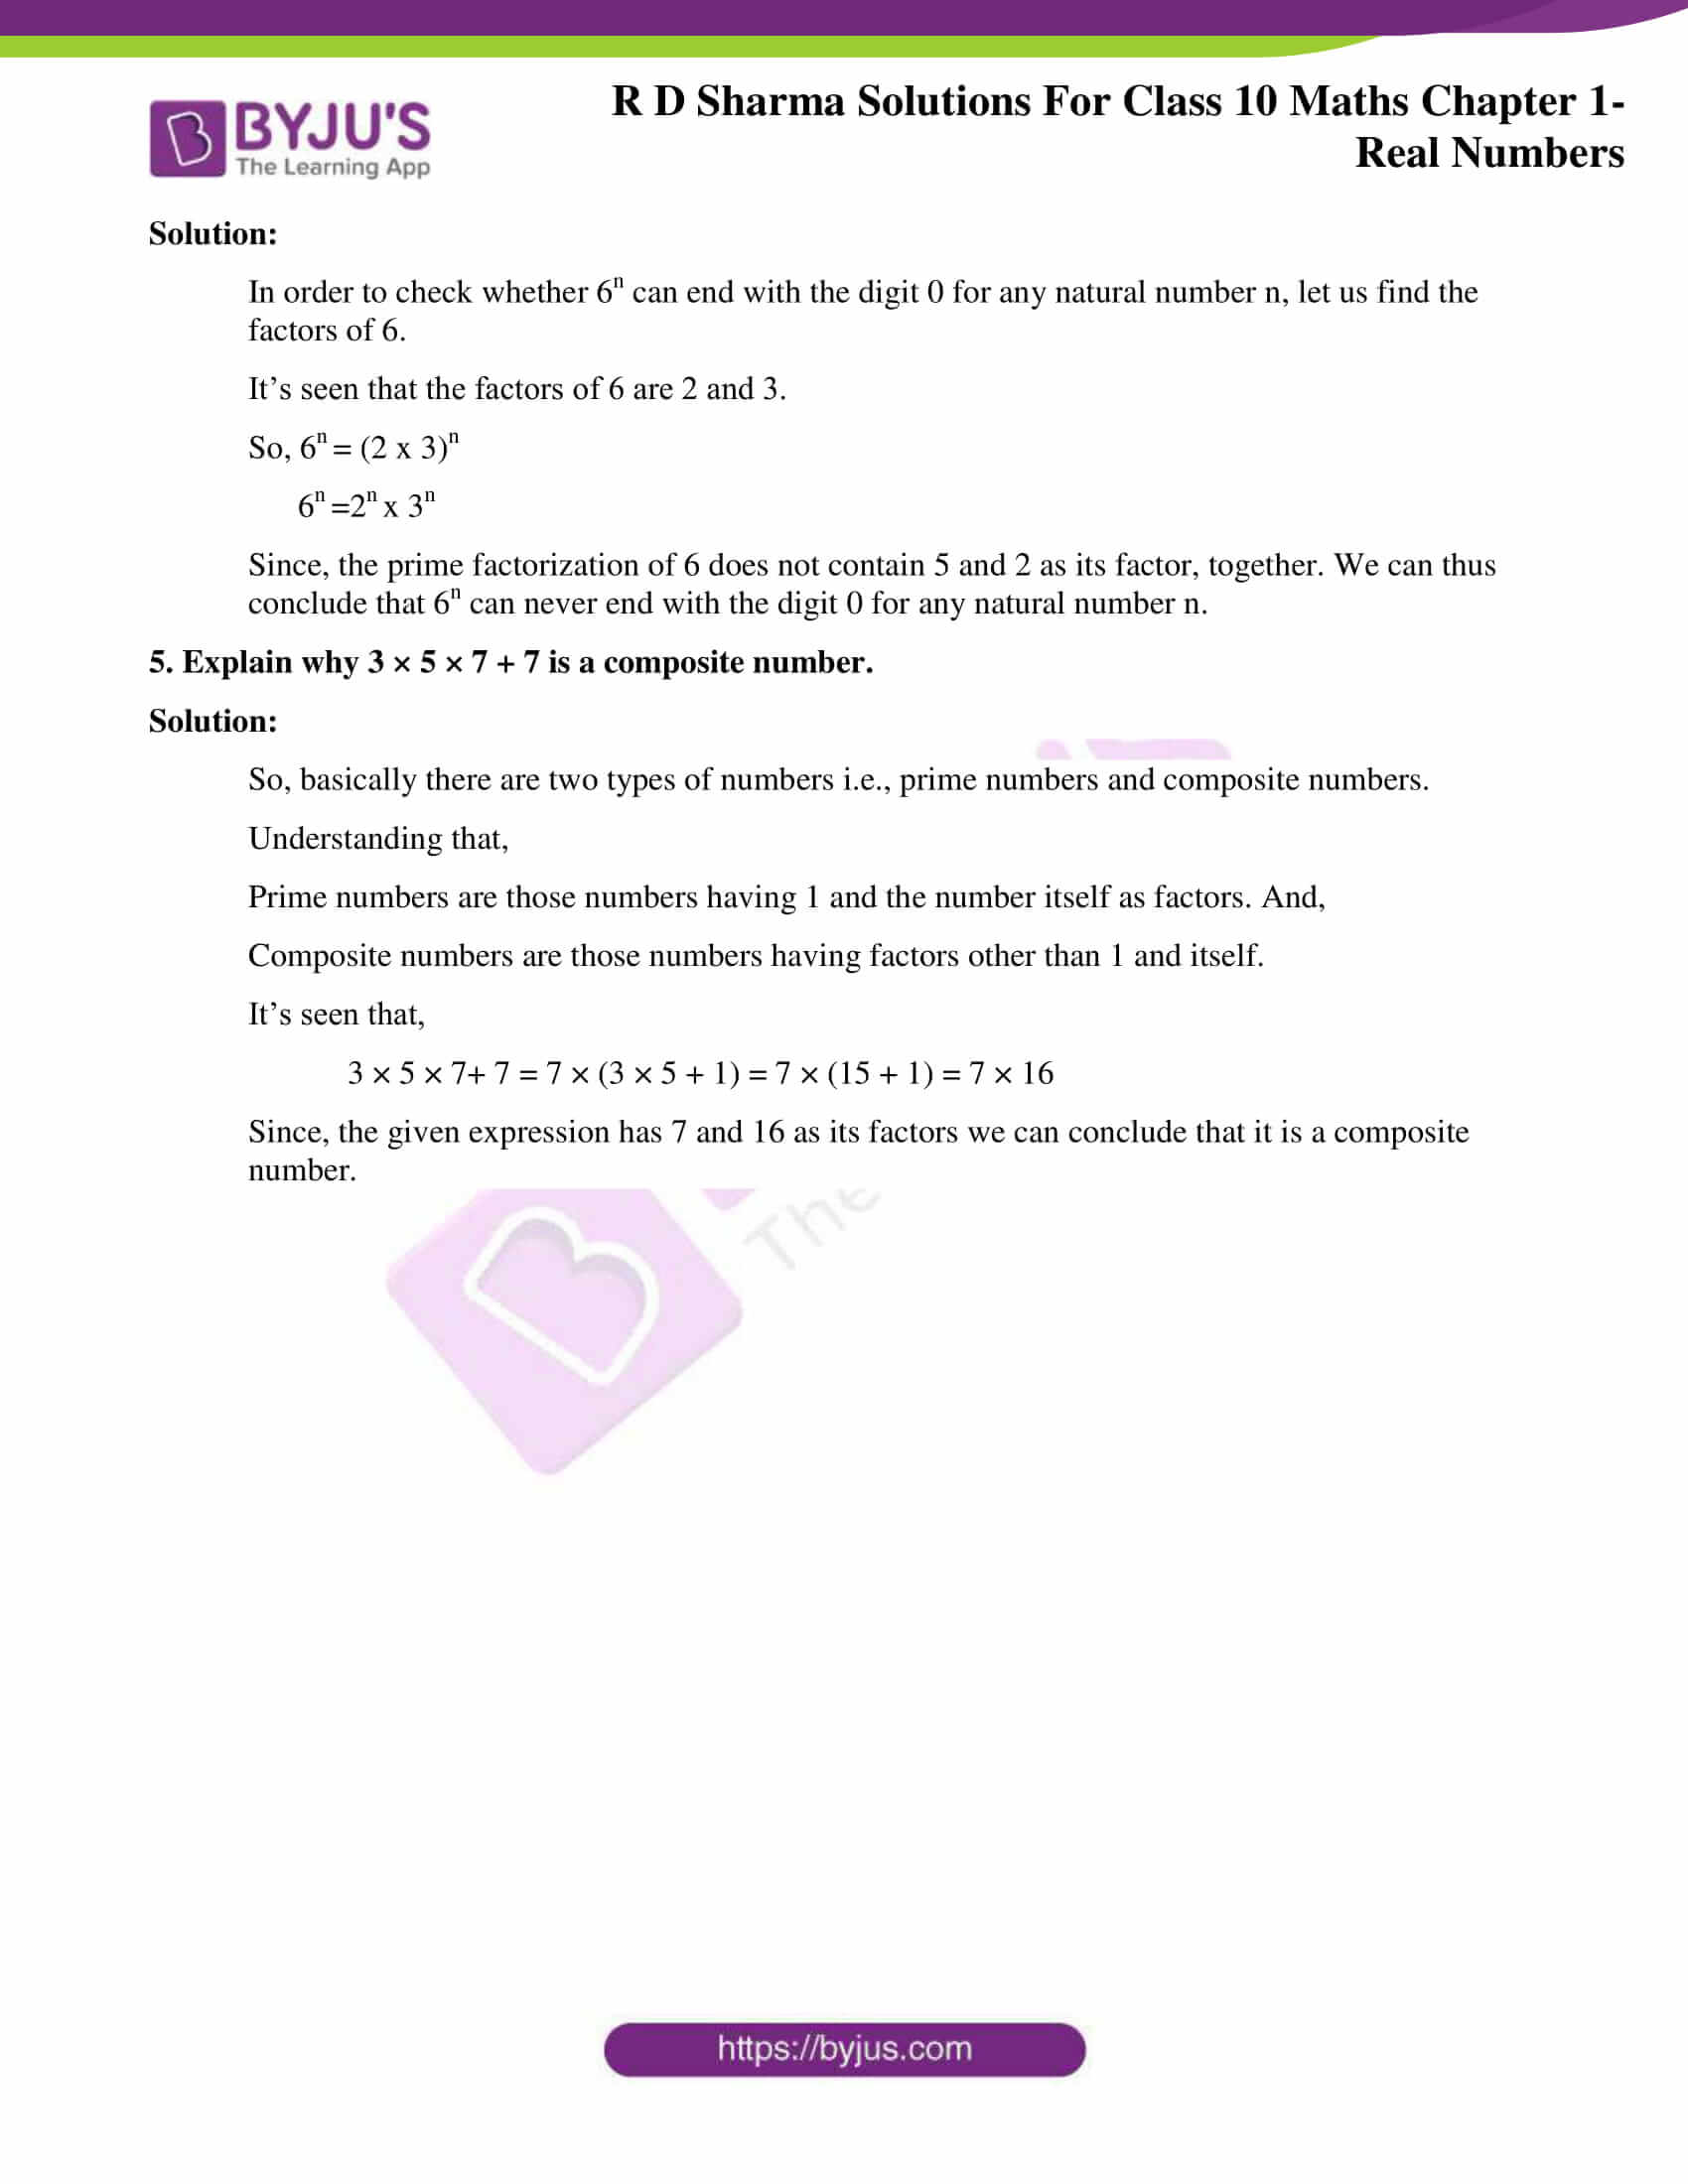 rd sharma class 10 chapter 1 real numbers solutions exercise 3 4